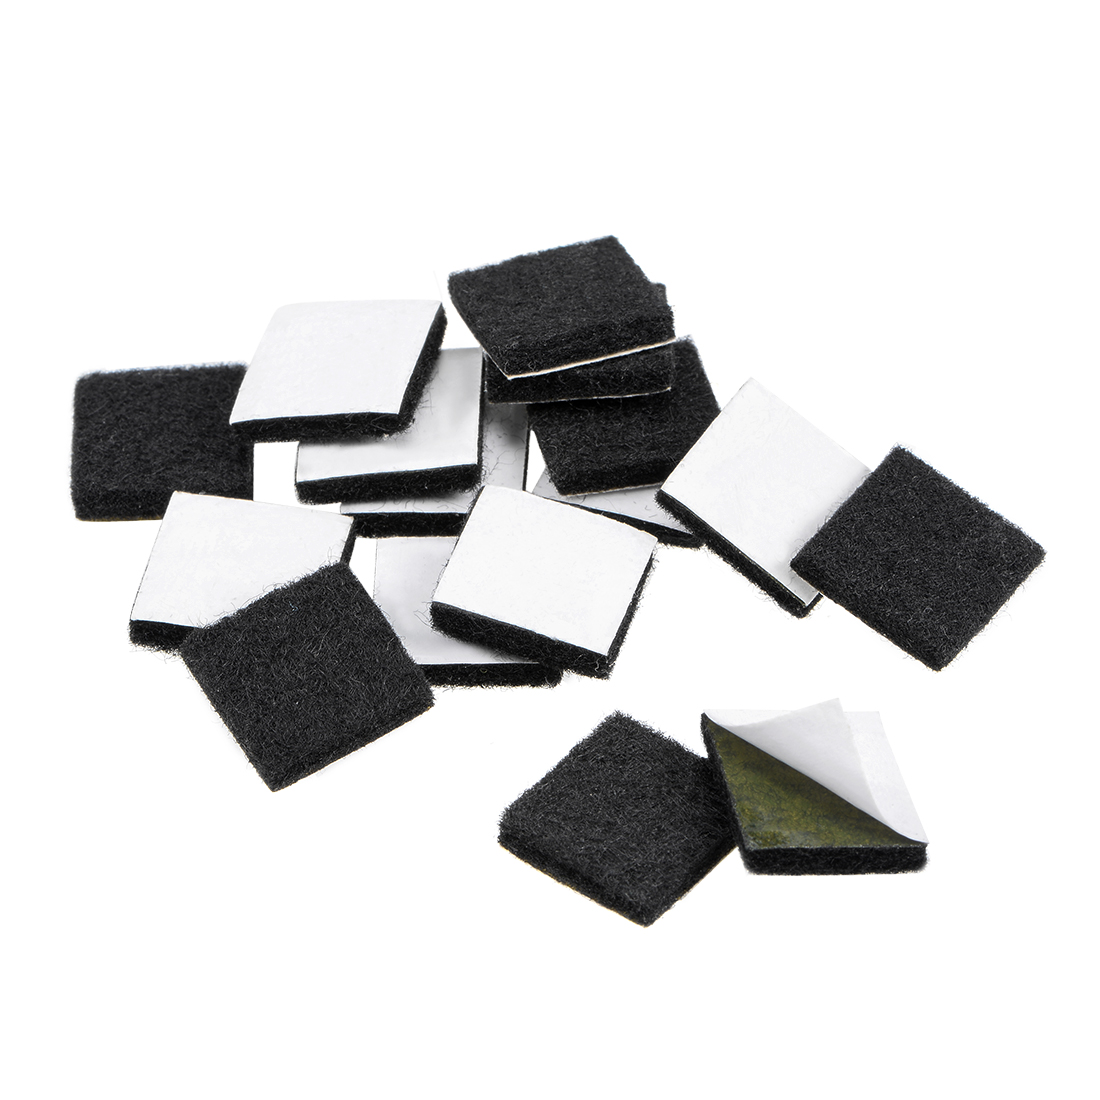 Furniture Pads Adhesive Felt Pads 16mm x 16mm Square 3mm Thick Black 16Pcs